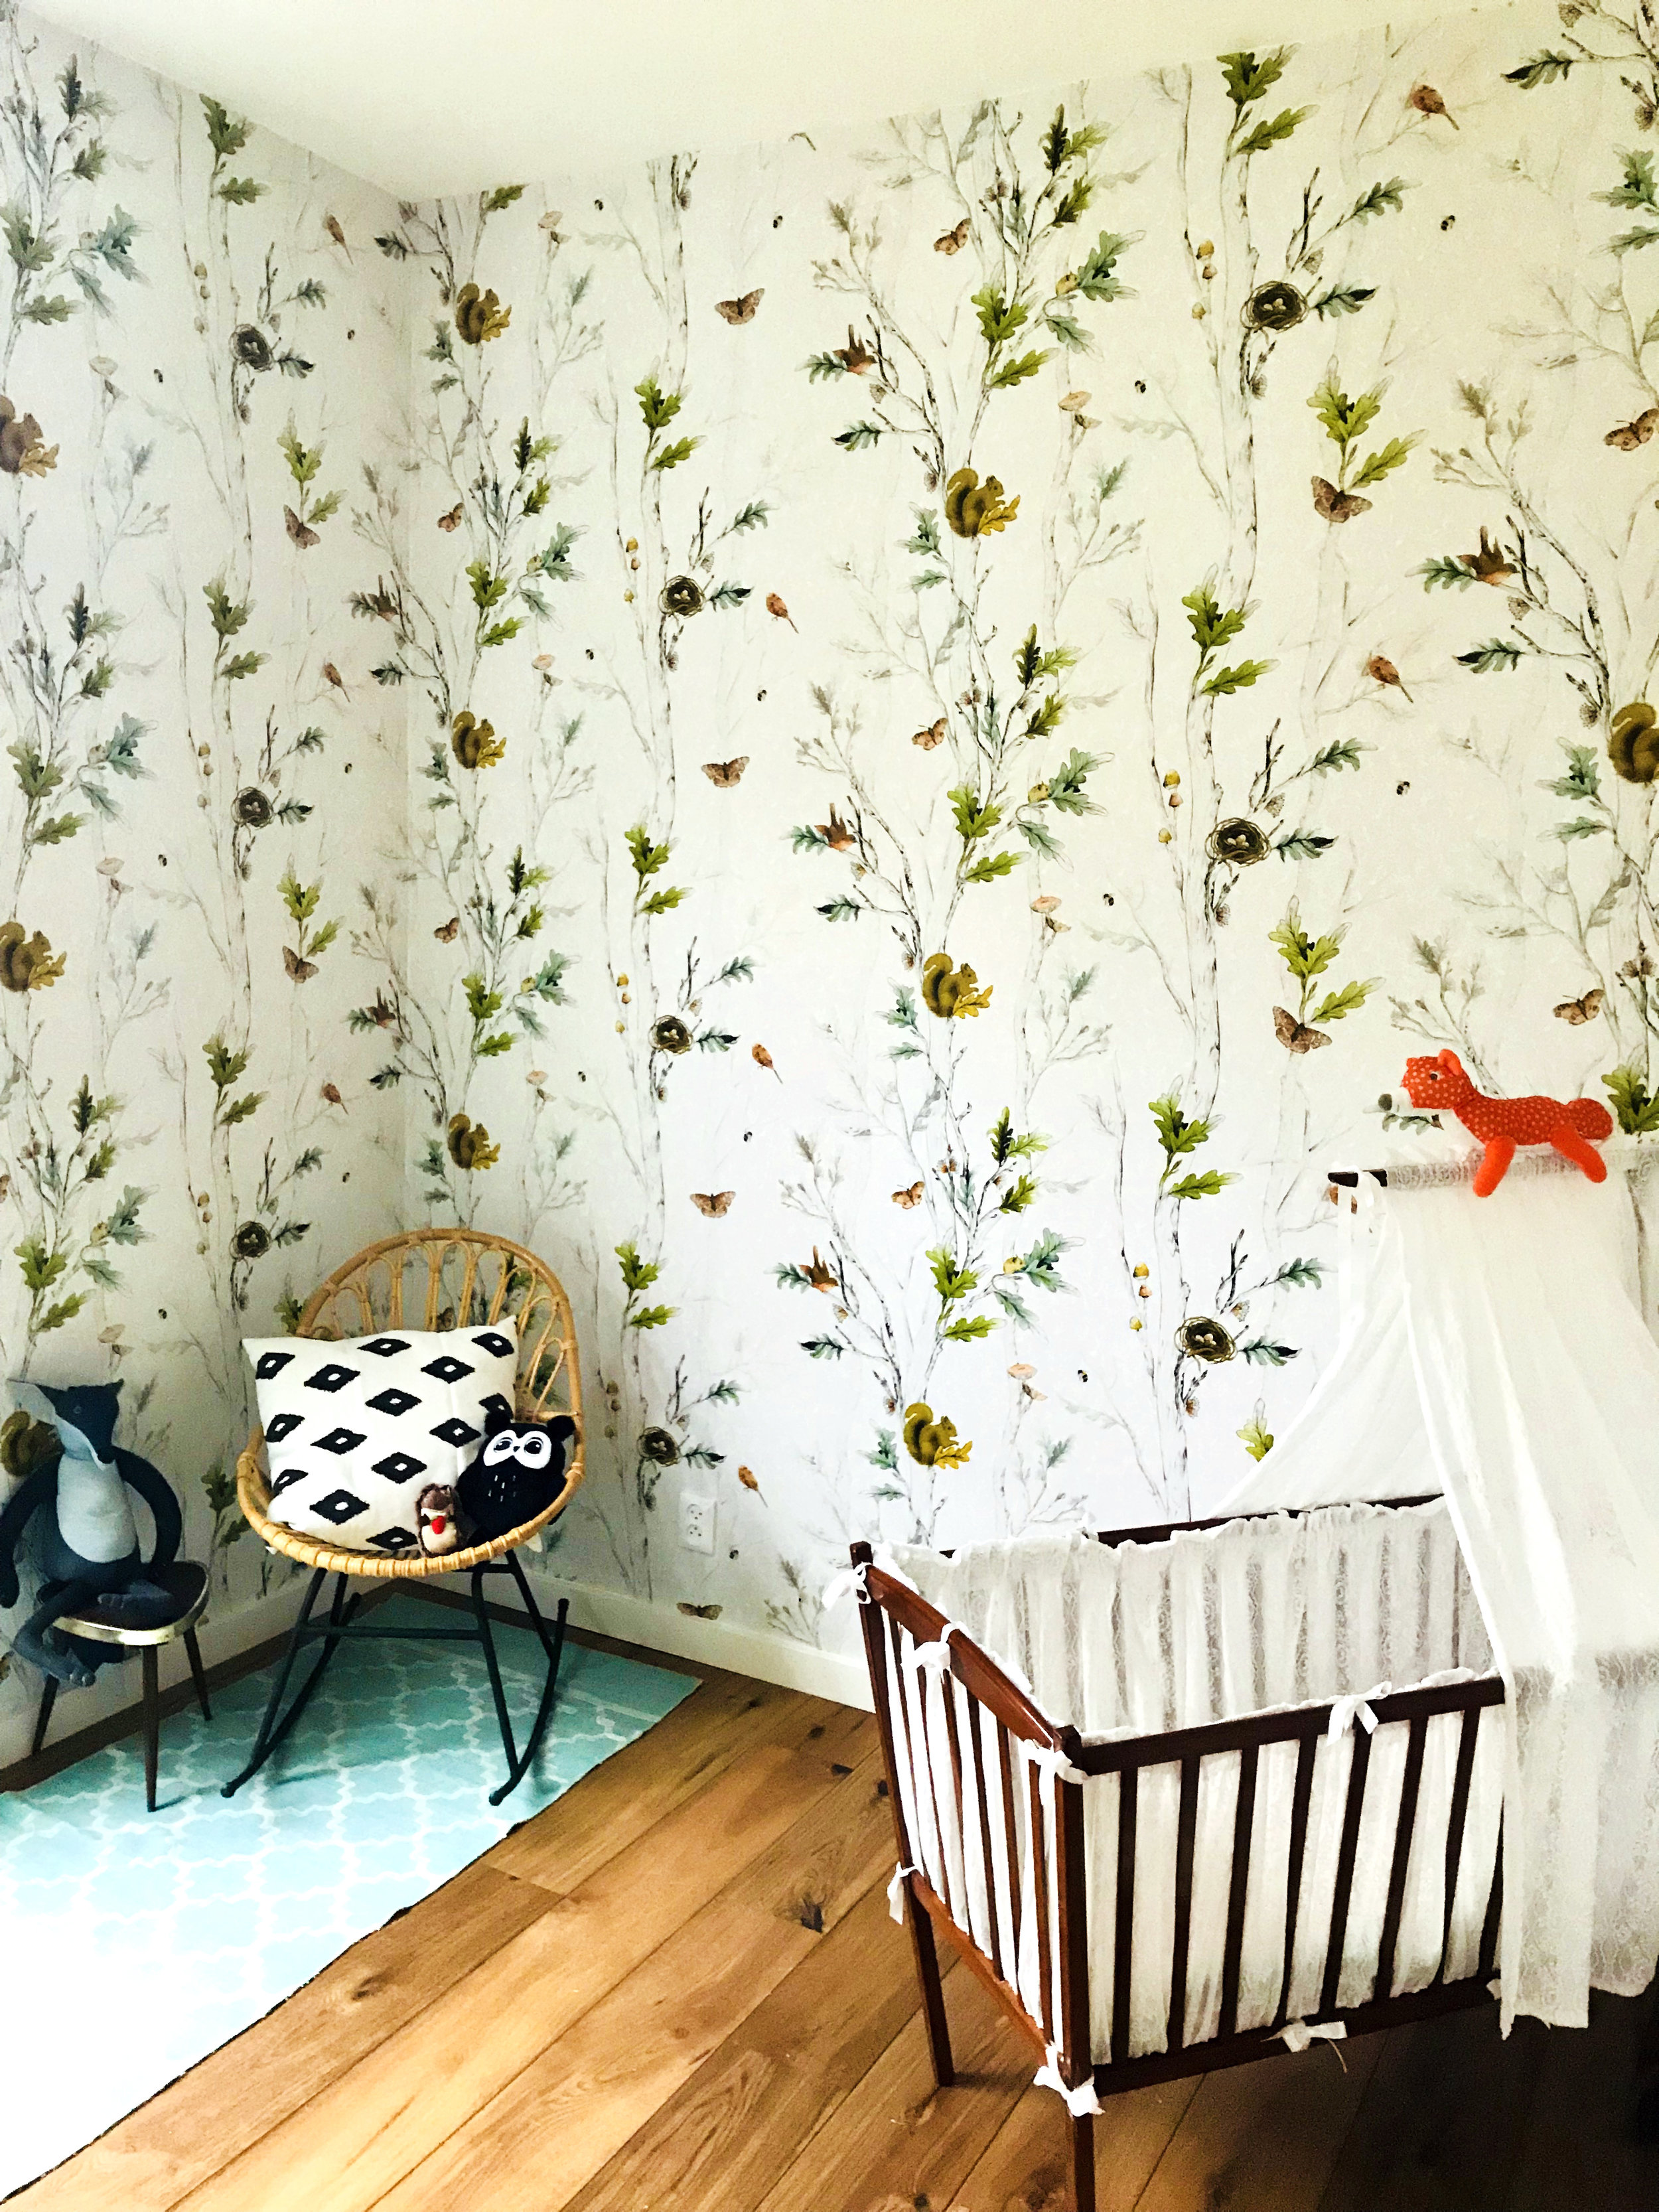 Fig. 3. Nursery with wallpaper